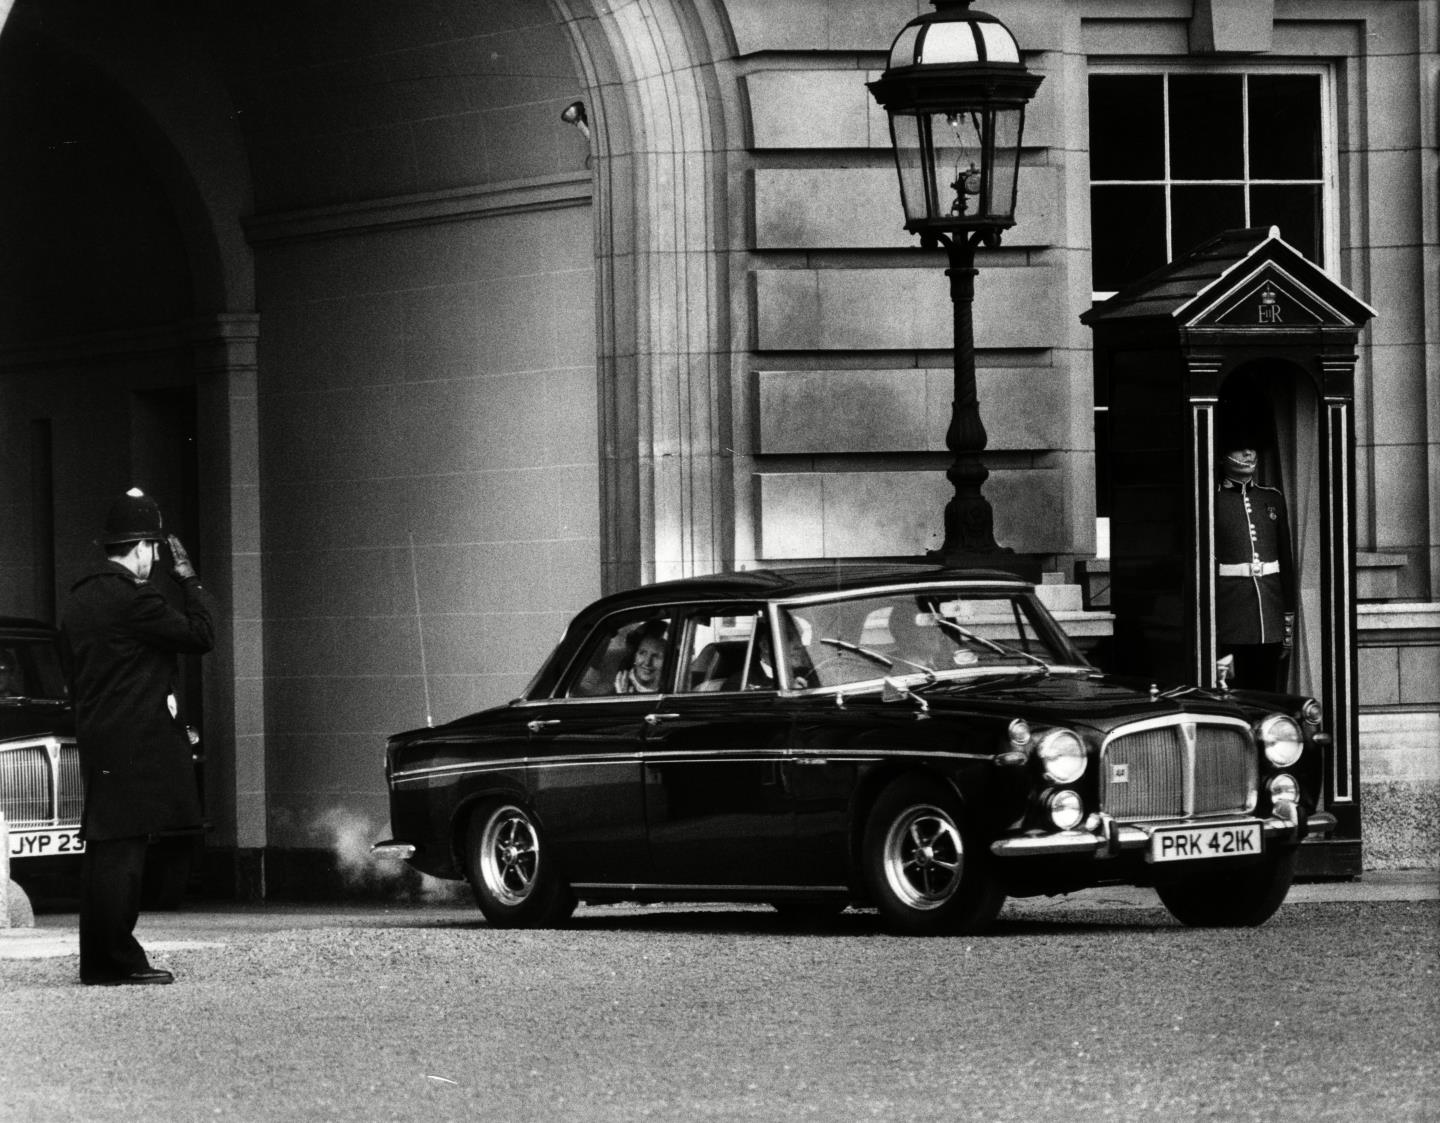 Margaret Thatcher leaves Buckingham Palace in May 1979 in her Rover, after becoming Britain's Prime Minister.